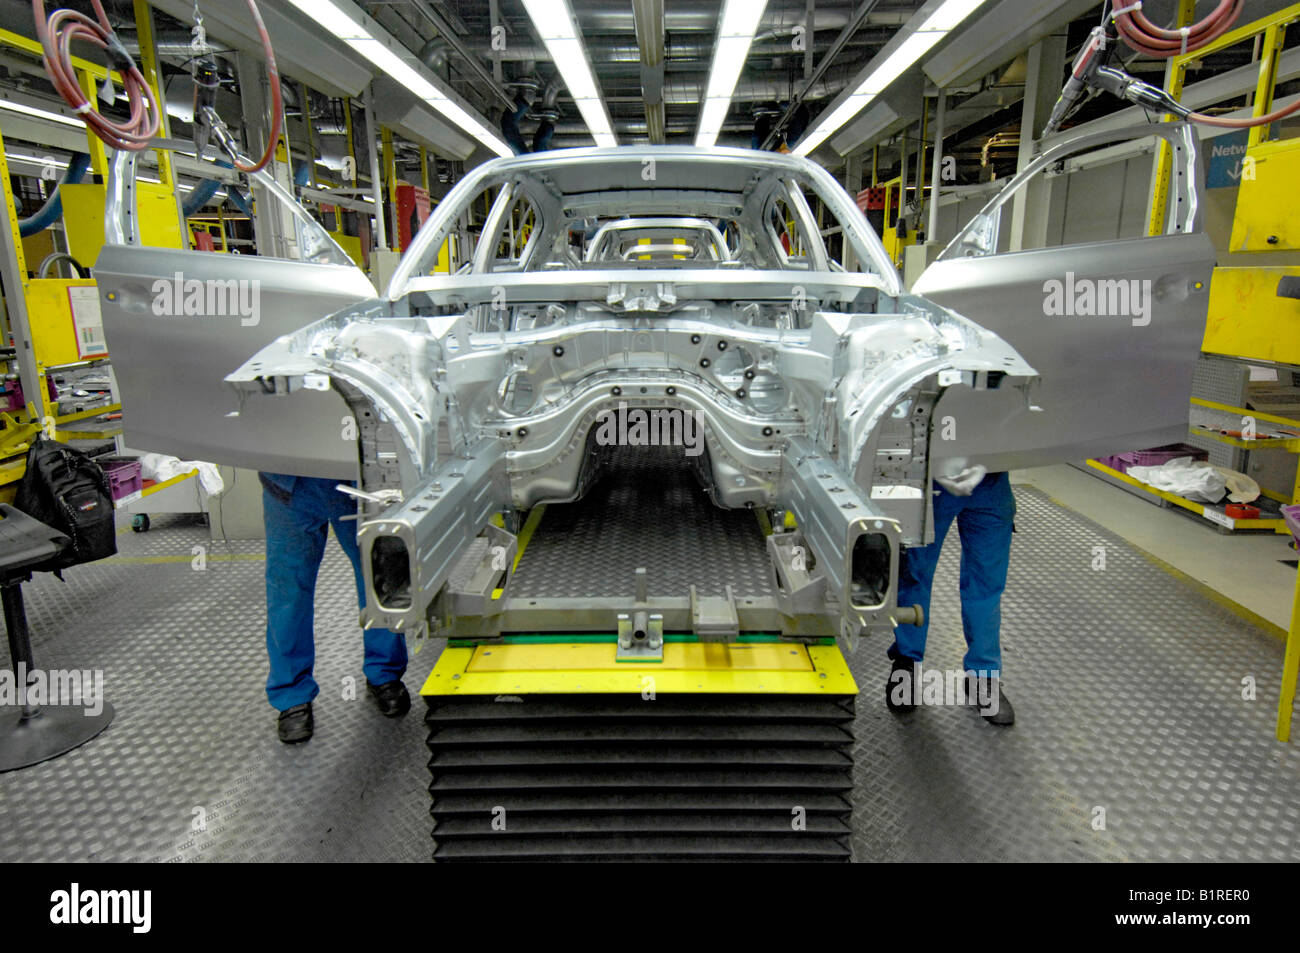 Car doors being polished, coachwork factory, production of the BMW 1 and 3 Series, BMW car plant in Regensburg, - Stock Image